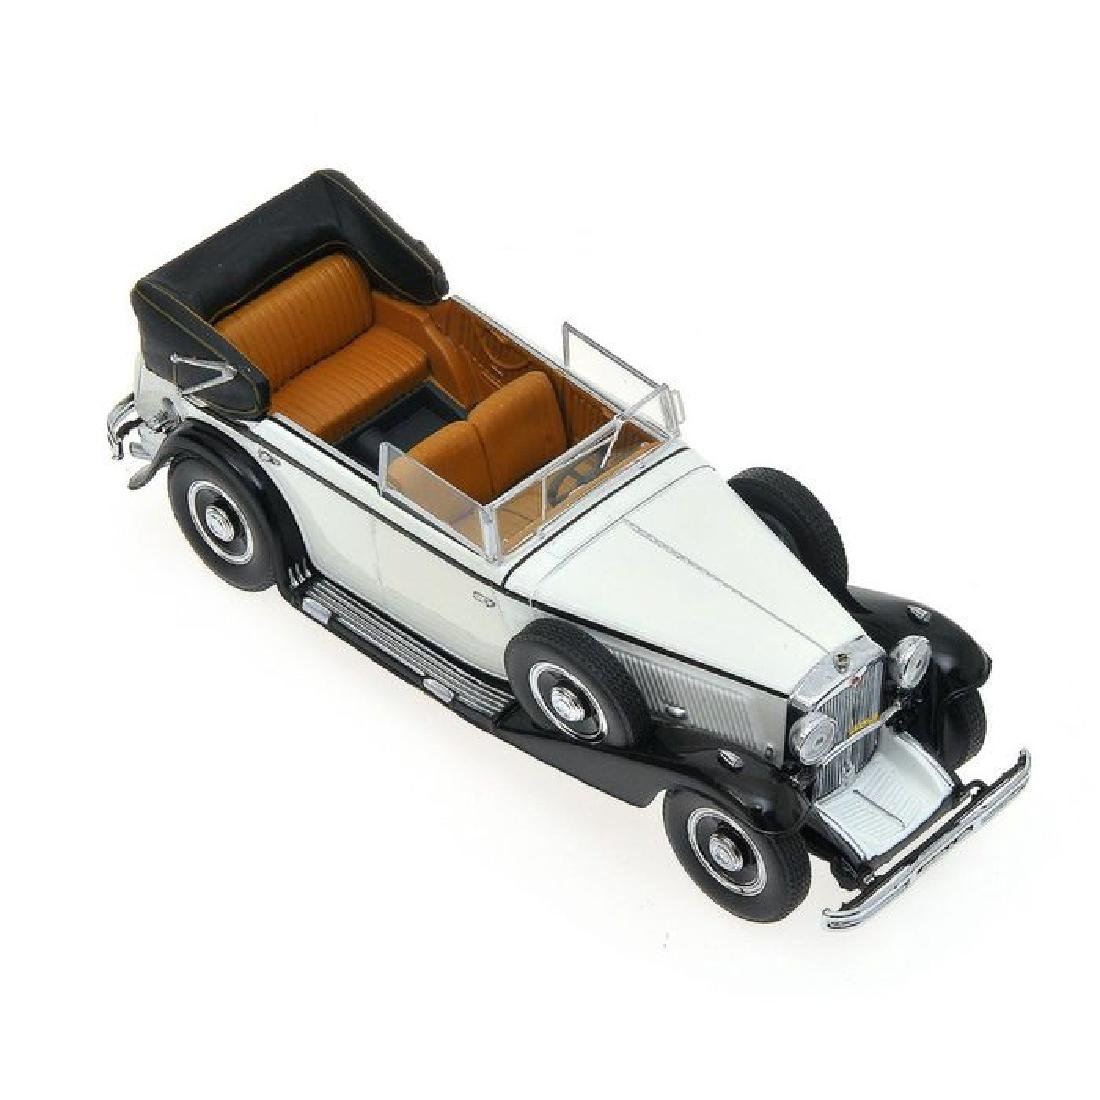 Minichamps Scale 1:43 Maybach Zeppelin DS8 1932 - 6